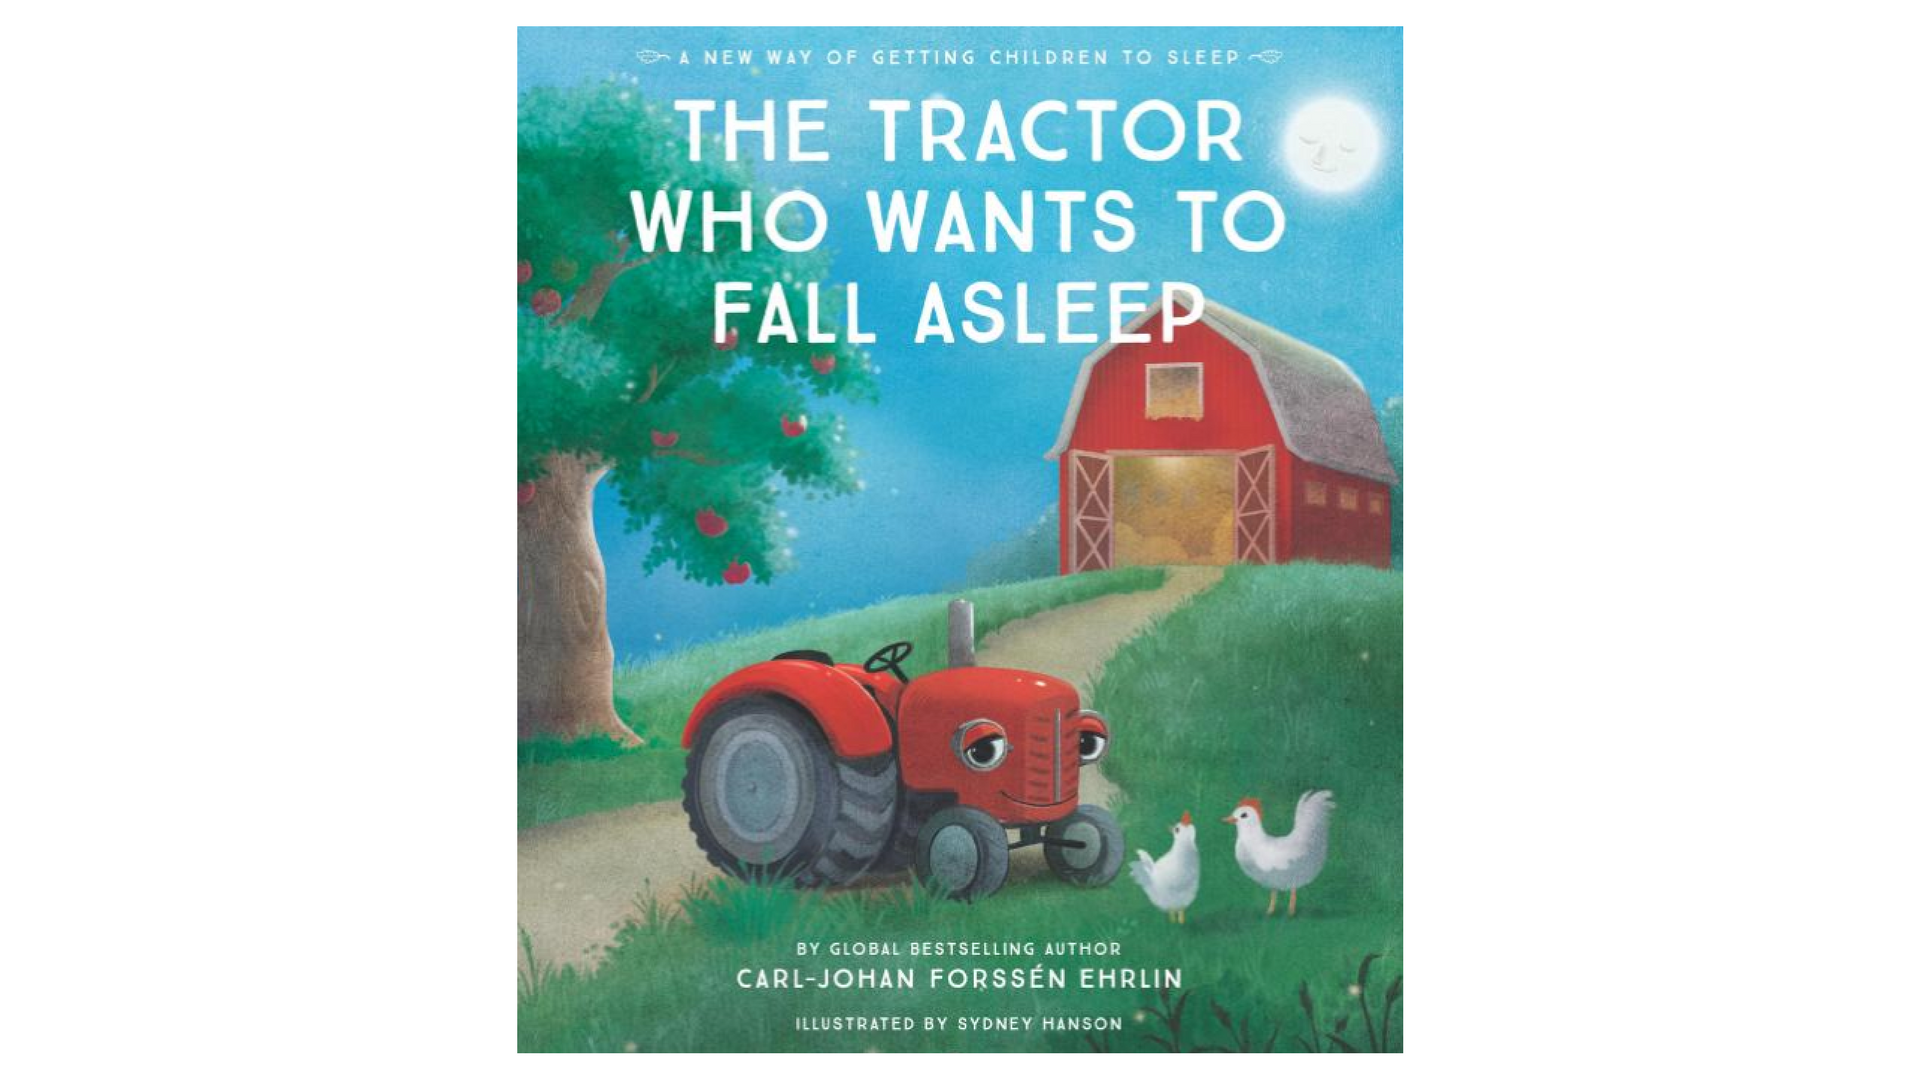 The Bestselling Book That Gets Kids To Fall Asleep Has A Sequel